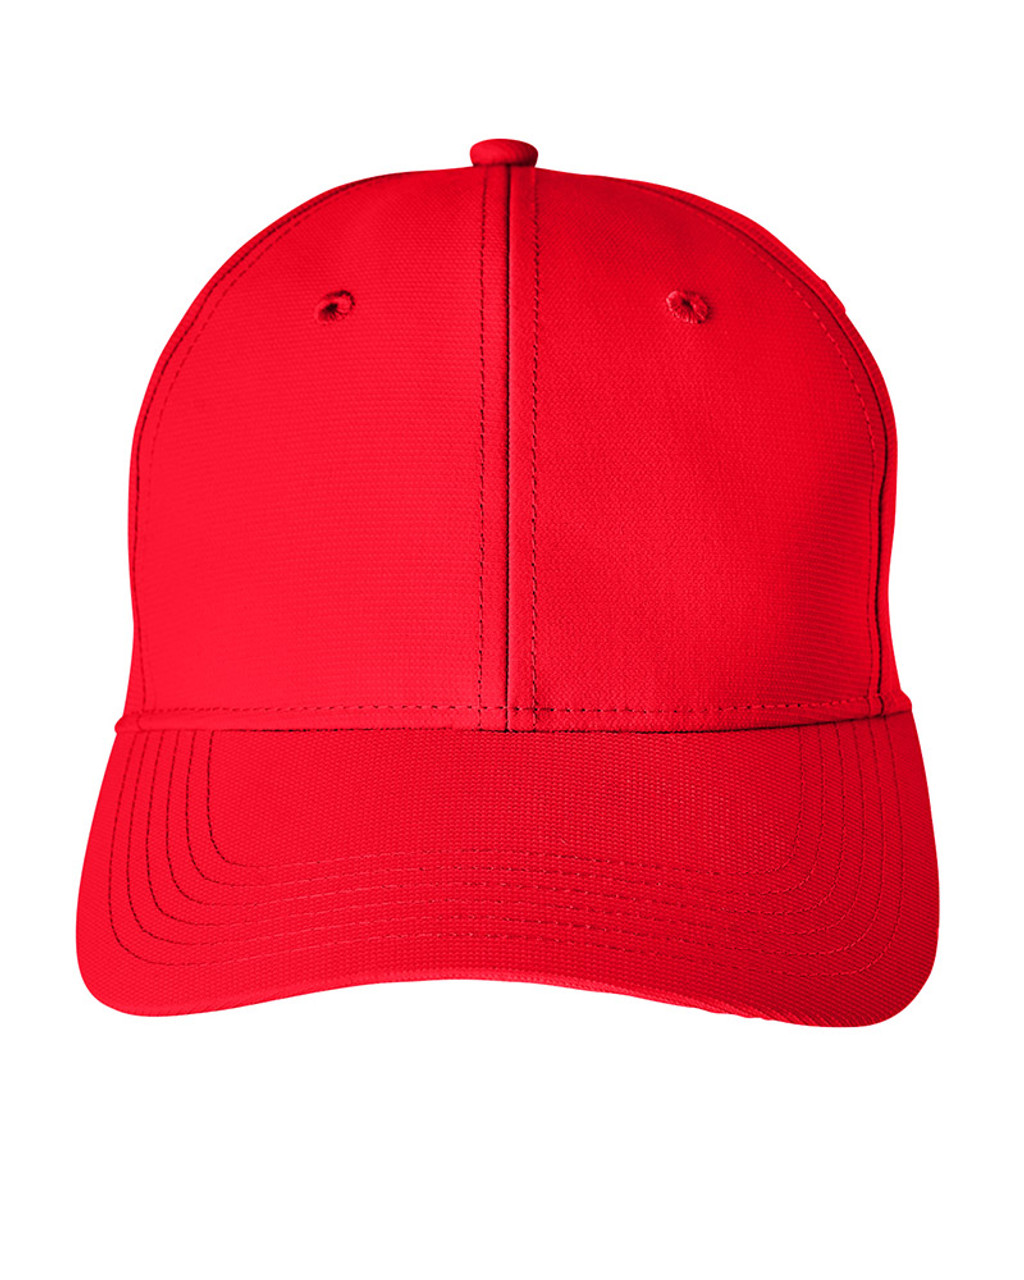 High Risk Red - 22673 Puma Golf Adult Pounce Adjustable Cap | Hardgoods.ca